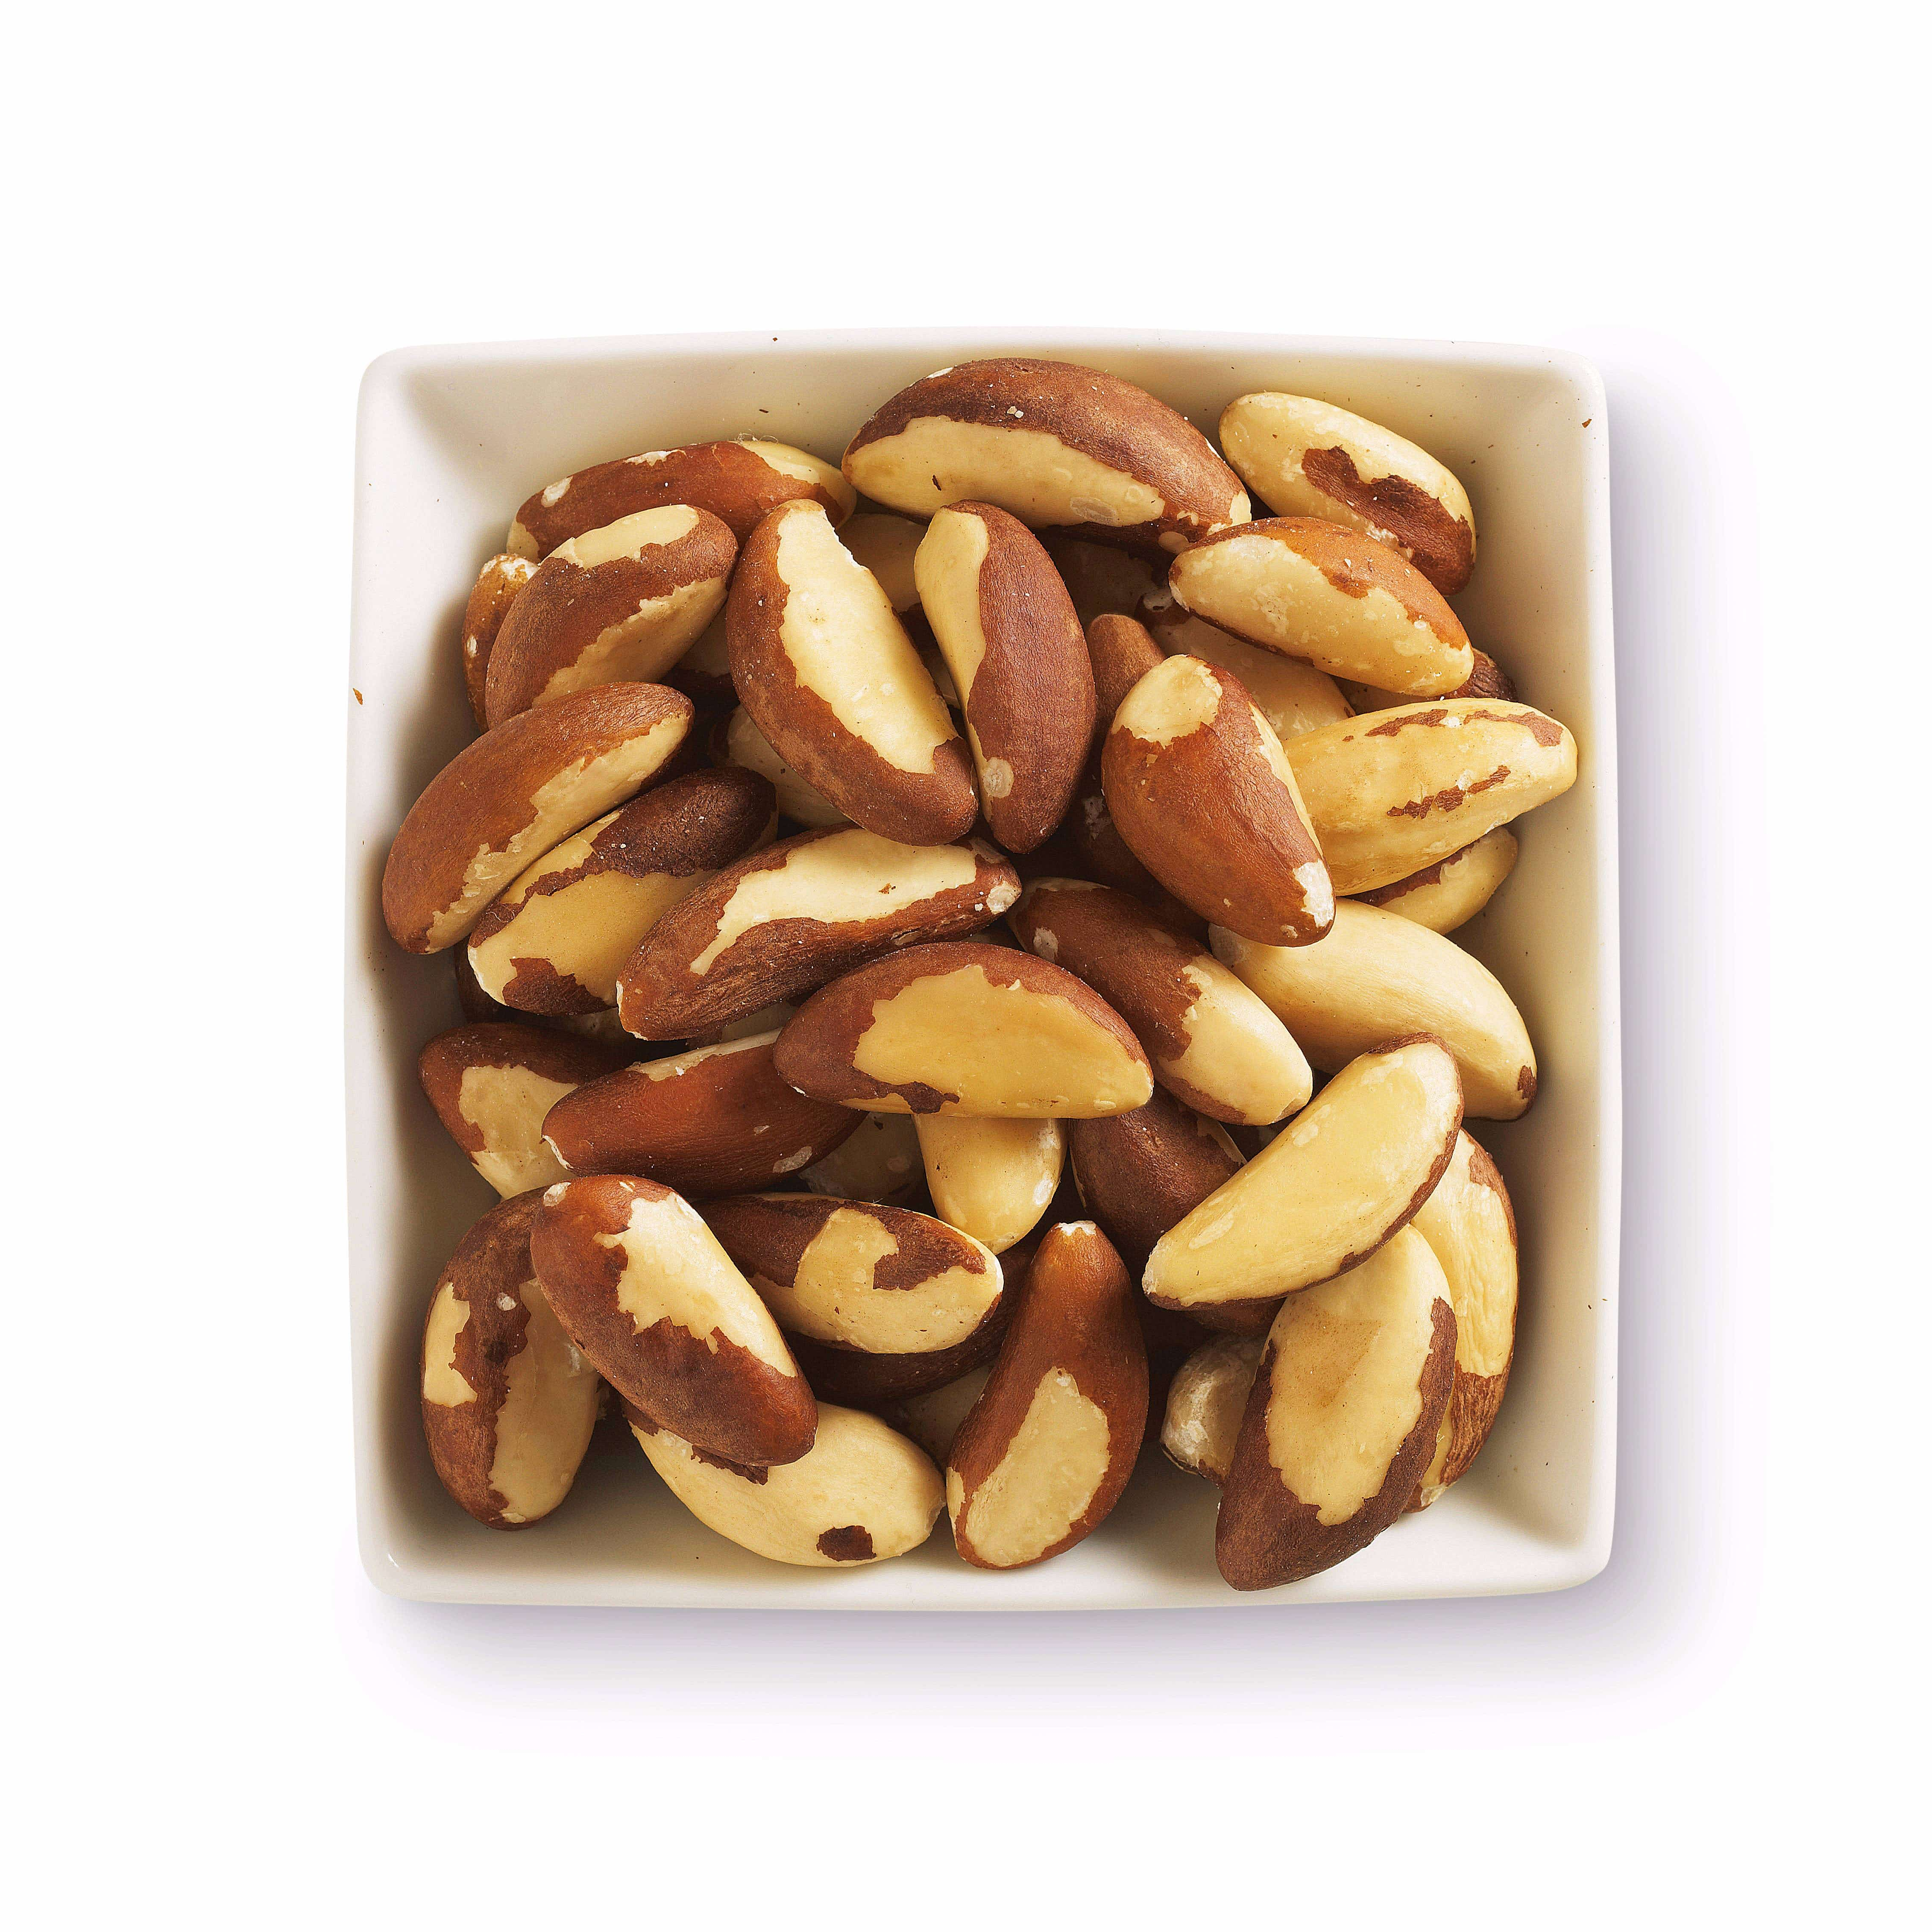 Tropical Wholefoods Organic Whole Brazil Nuts (125g) SINGLE